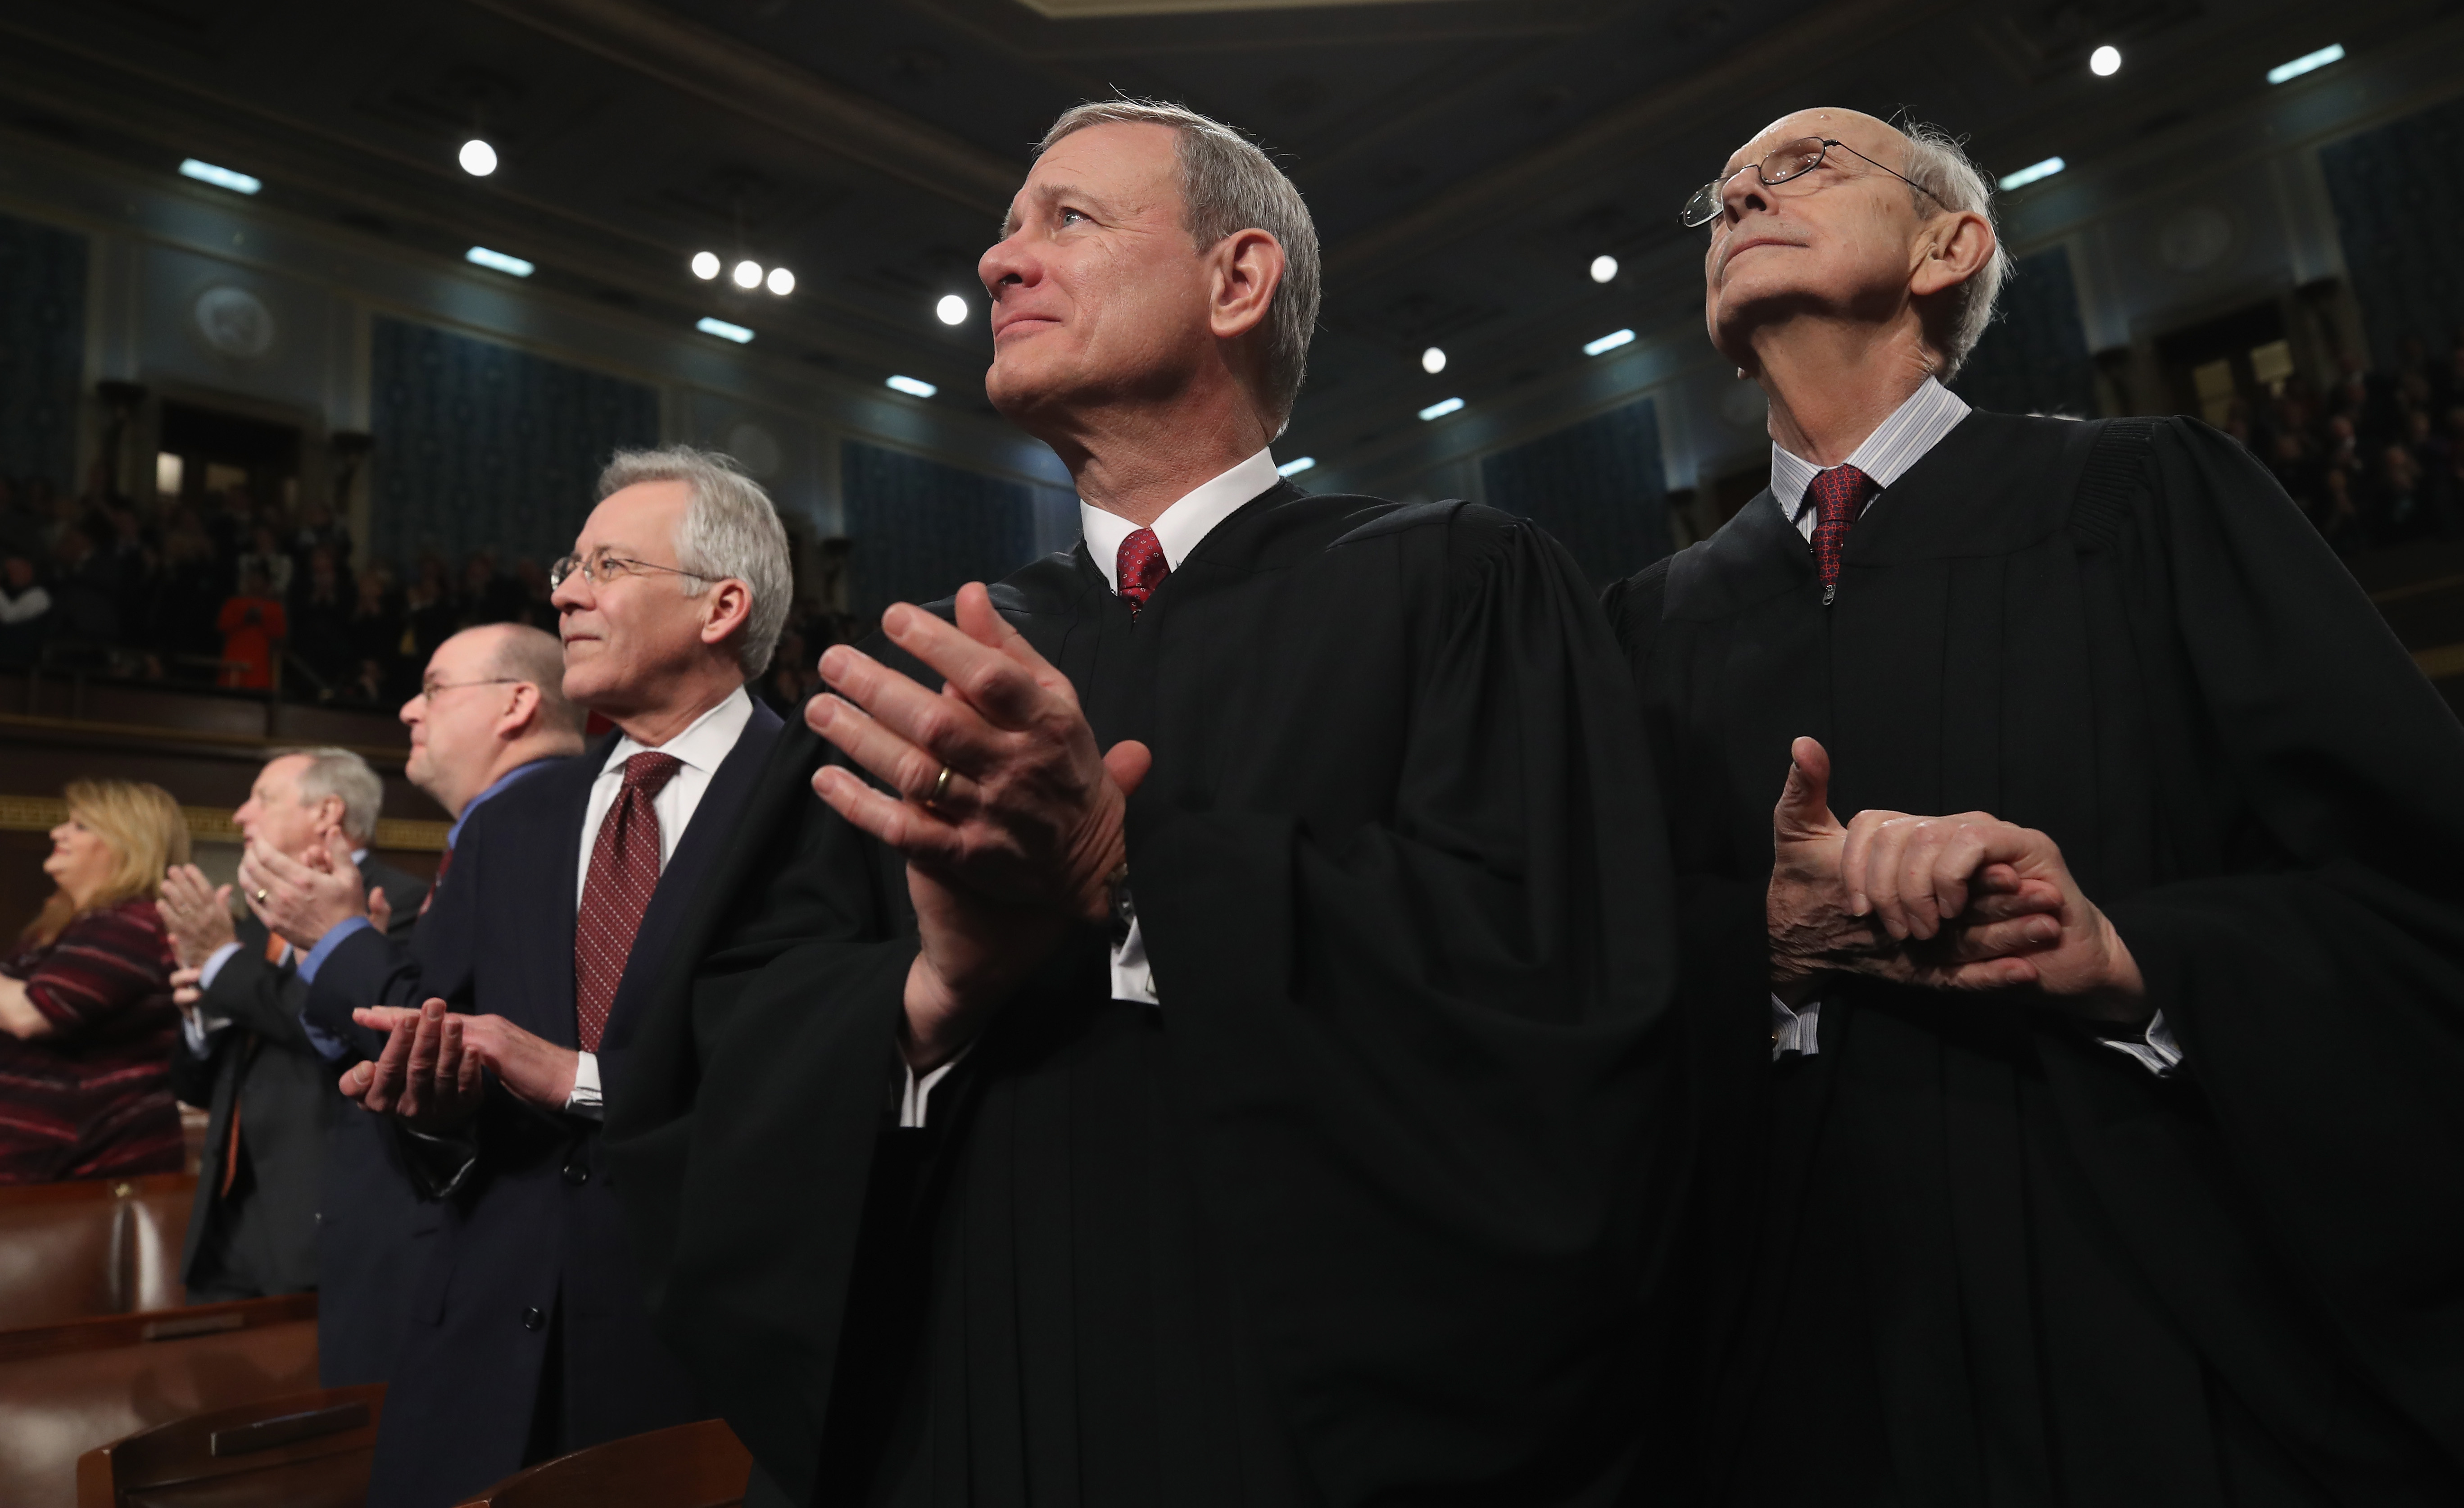 Chief Justice John Roberts (C) during the State of the Union address on January 30, 2018. (Win McNamee/Getty Images)